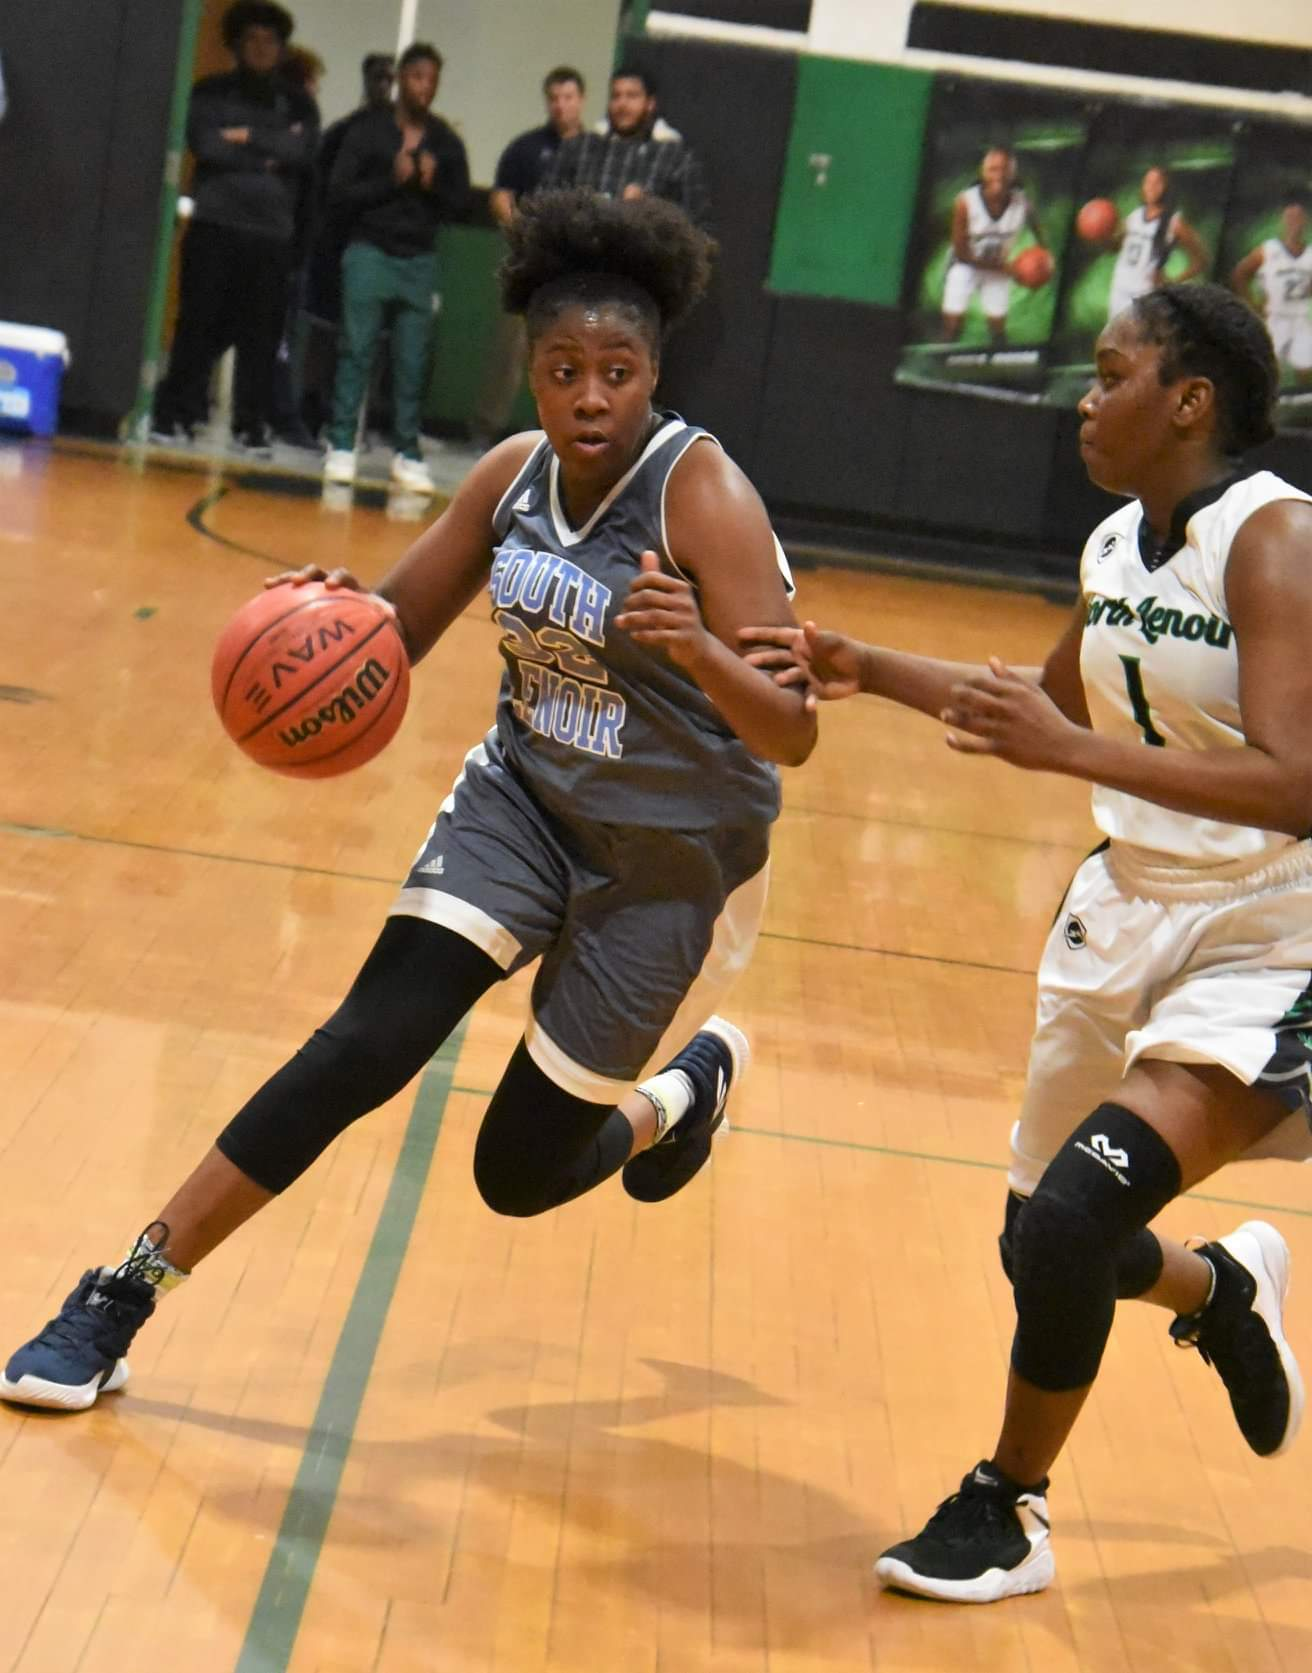 South Lenoir's Gralicia Jenkins drives on North Lenoir's Emmenia Lynch during a Feb. 13 contest. The Blue Devils picked up the No. 29 seed in the playoffs. Photo by William 'Bud' Hardy / Neuse News